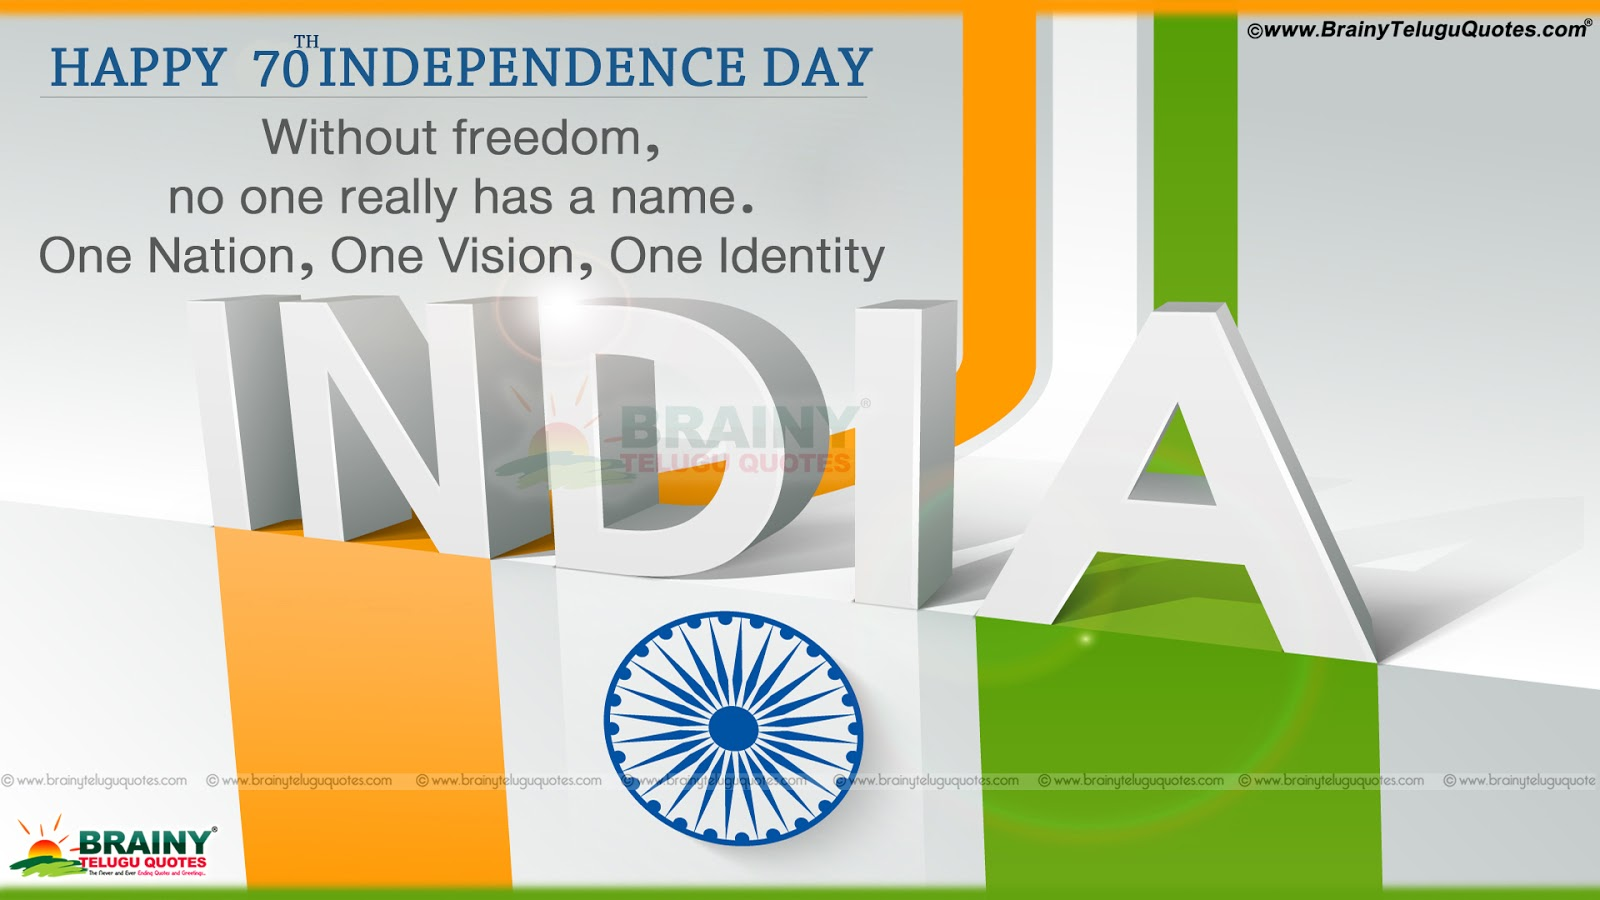 Here Is A Advance Independence Day Greetings And Messages Online,  Independence Day Greetings And Messages. 2016 Independence Day Wallpapers  With Nice ...